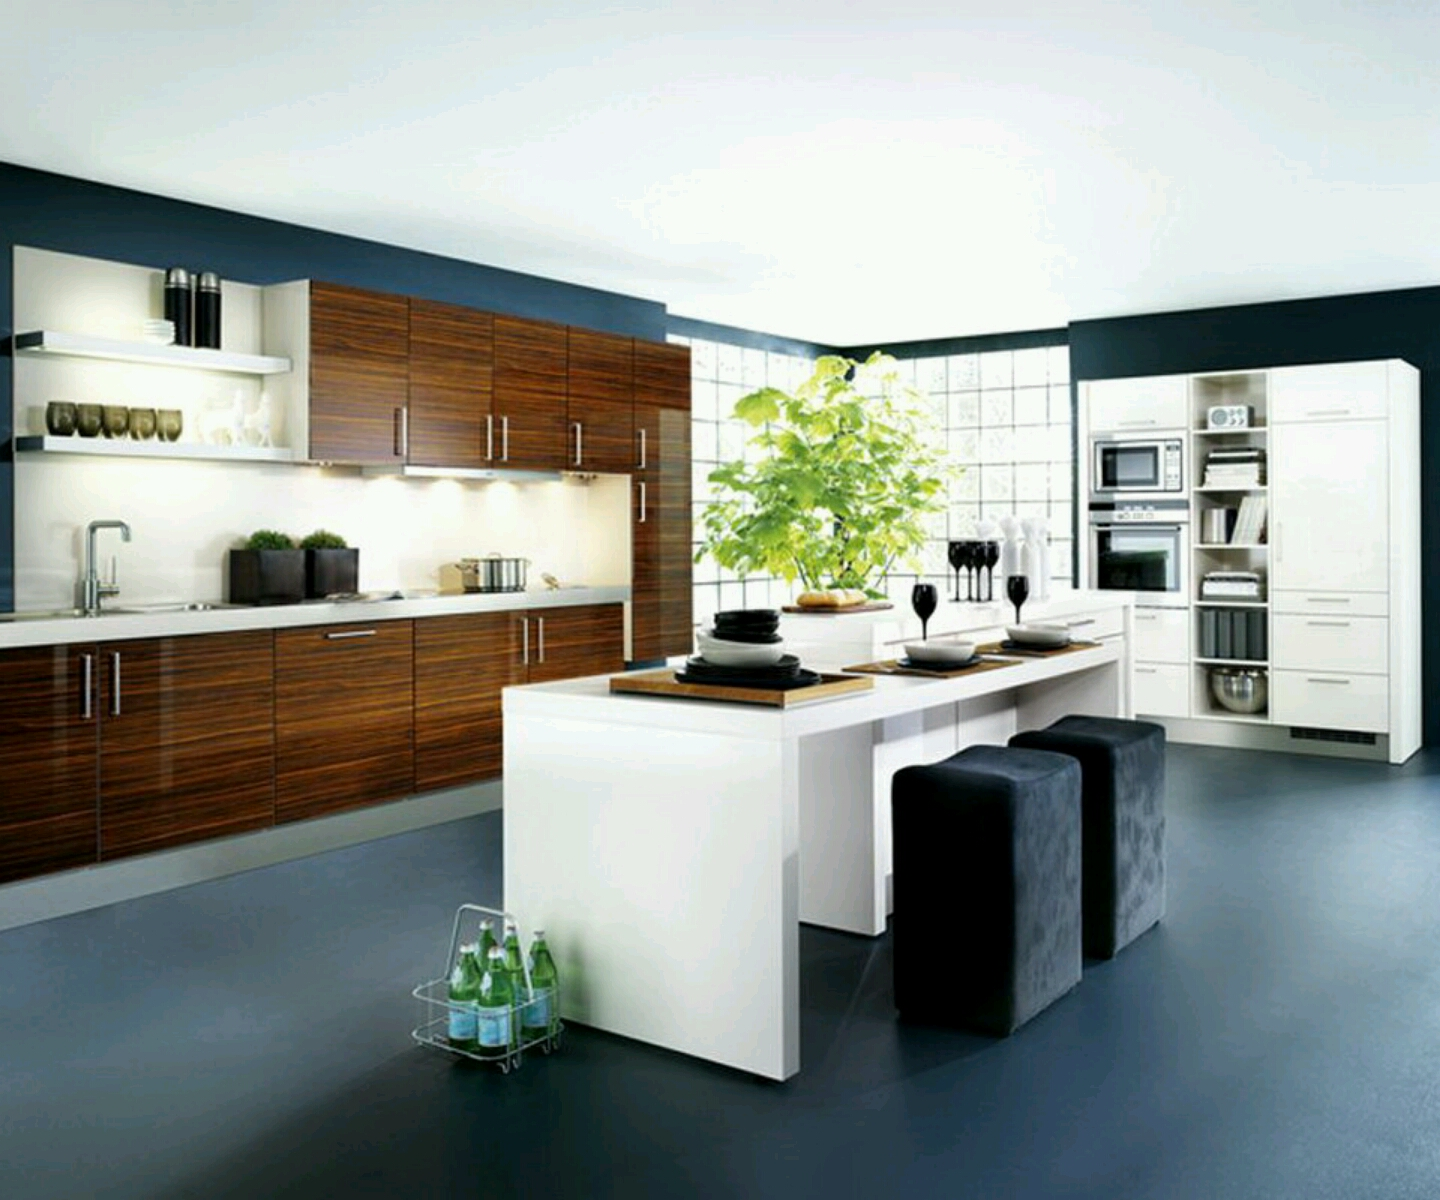 New home designs latest kitchen cabinets designs modern for House design kitchen ideas